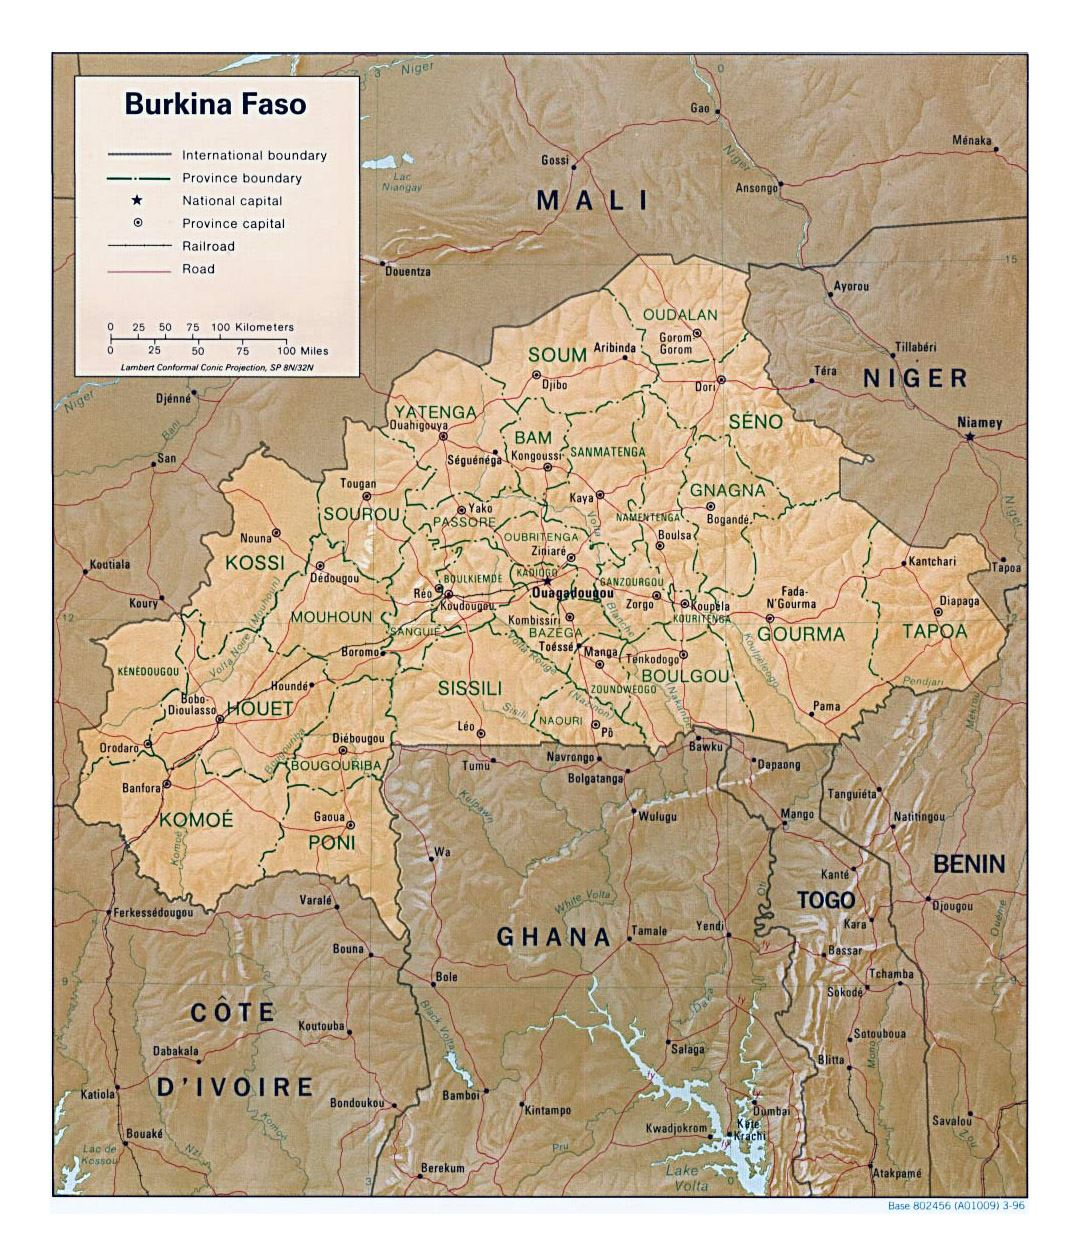 Detailed political and administrative map of Burkina Faso with relief, roads, railroads and major cities - 1996